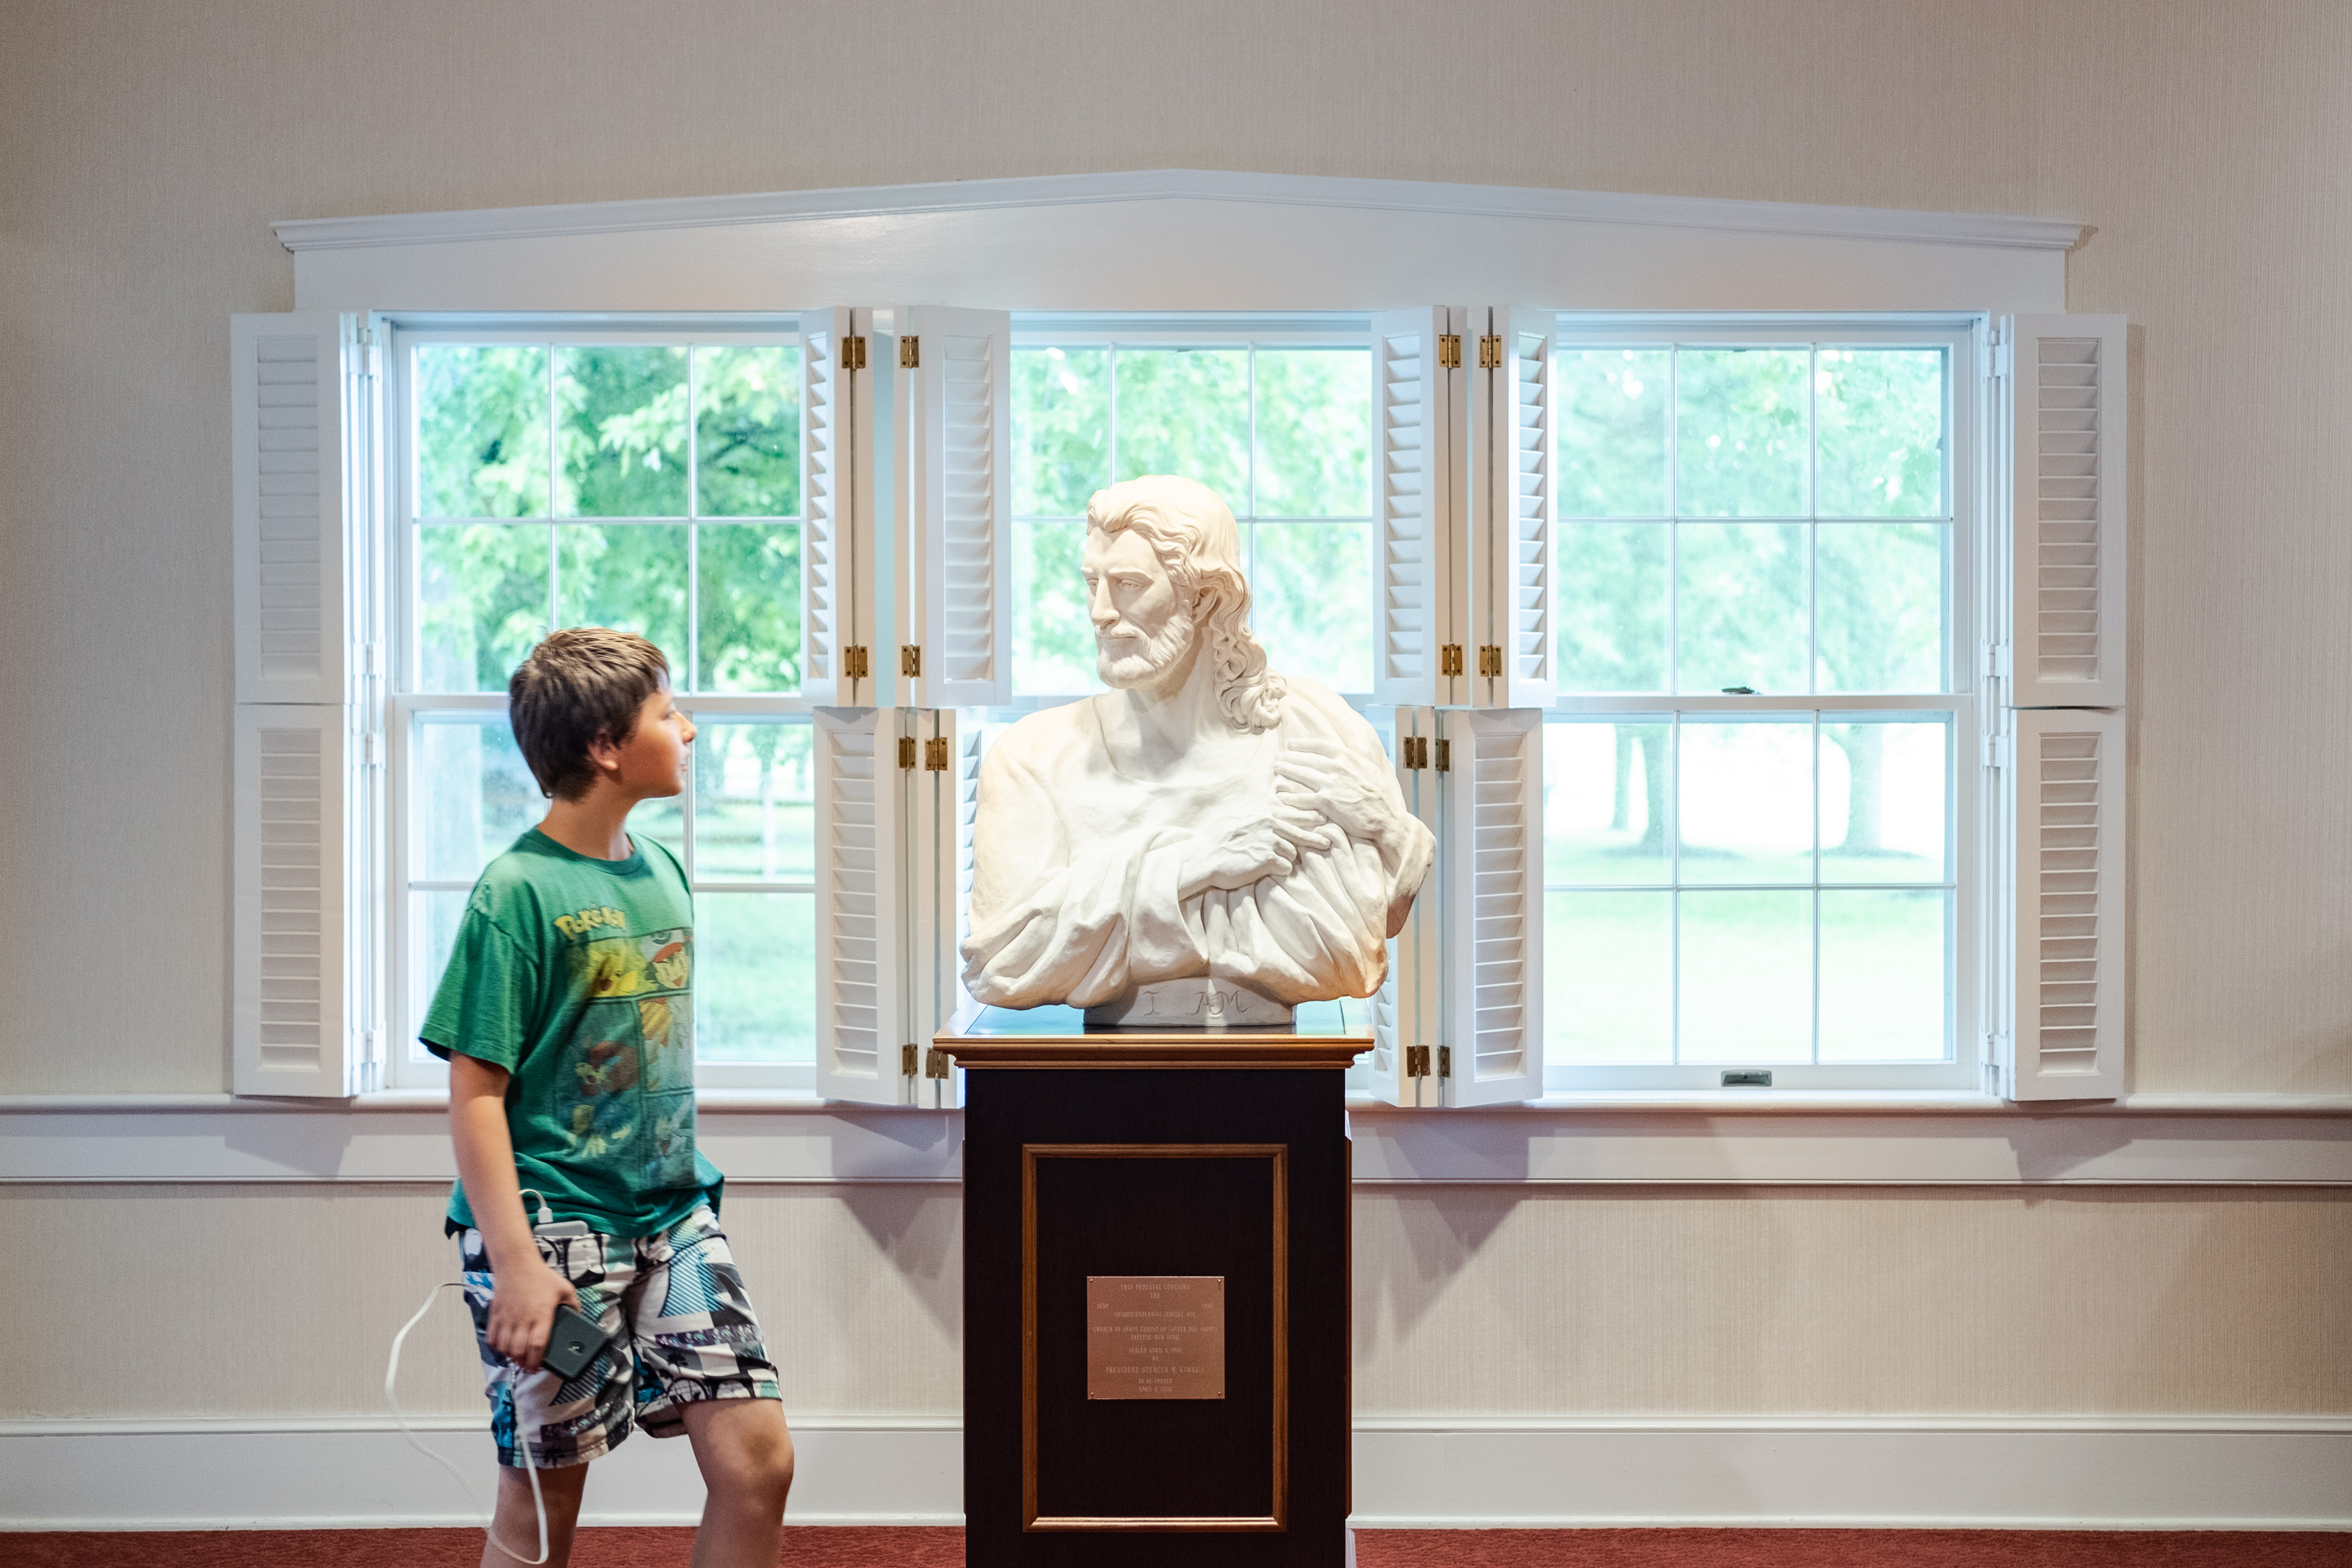 Boy and Bust of Christ at Whitmer Farm Visitors' Center, Waterloo, NY, 2019